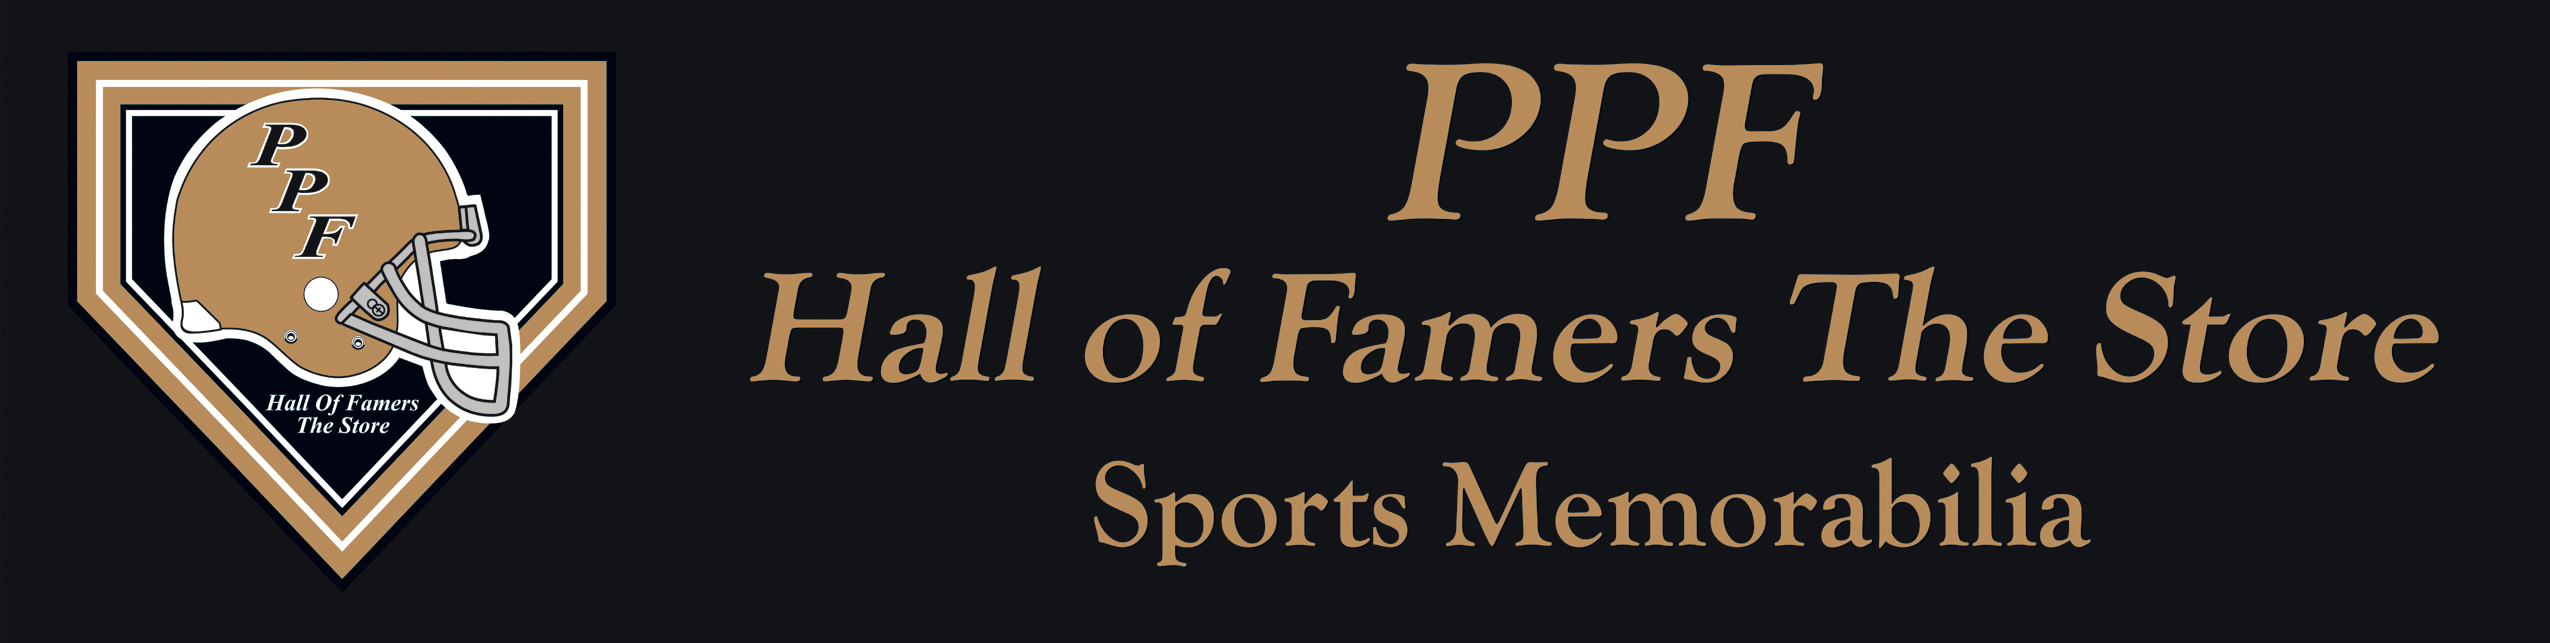 Ppf Hall of Famers